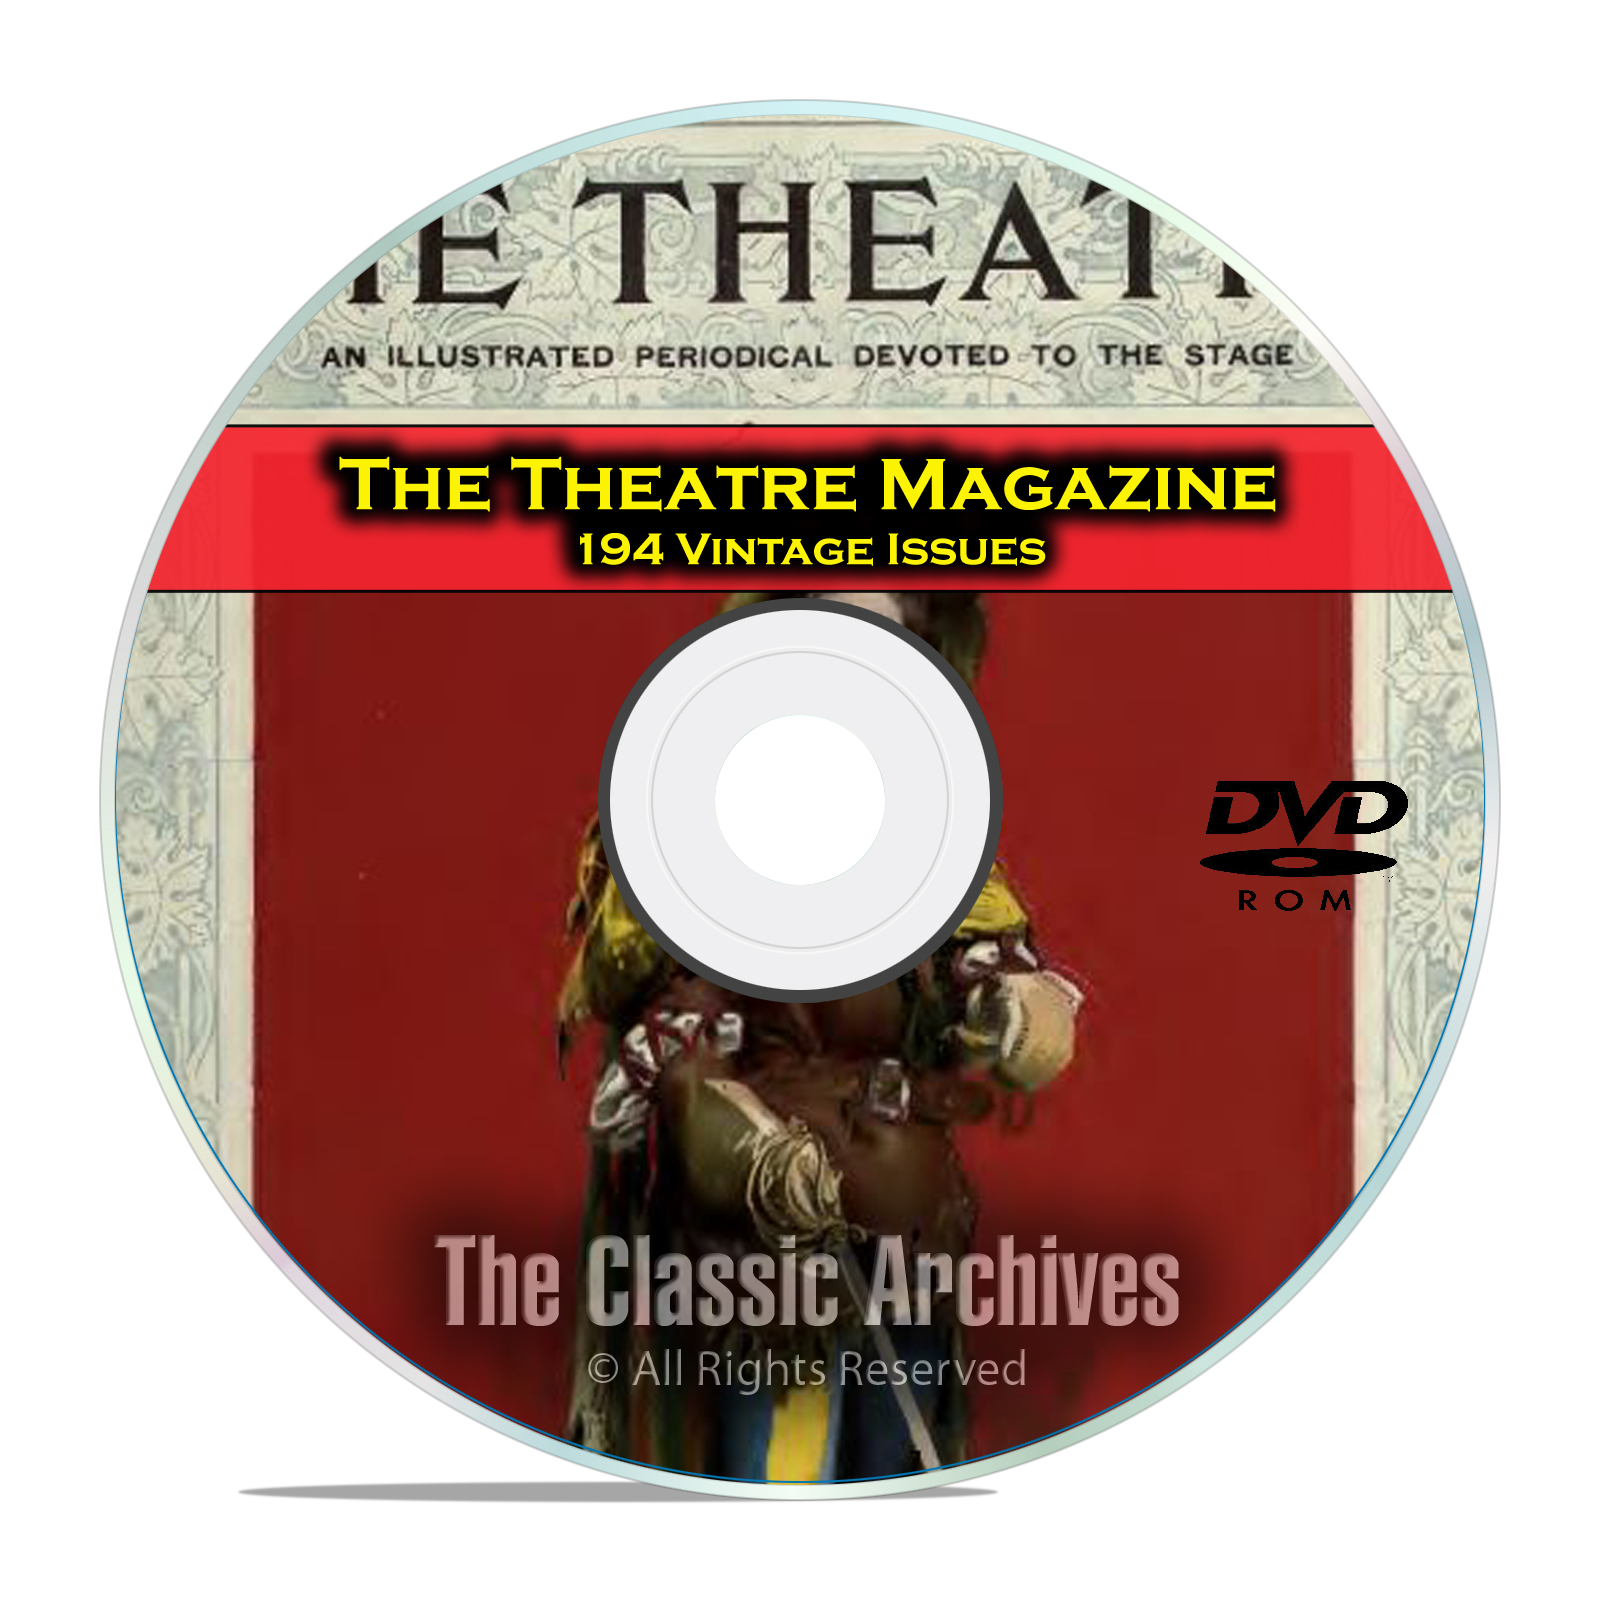 Theatre Magazine, 194 Issues, Vintage Plays Opera Arts Broadway Drama DVD